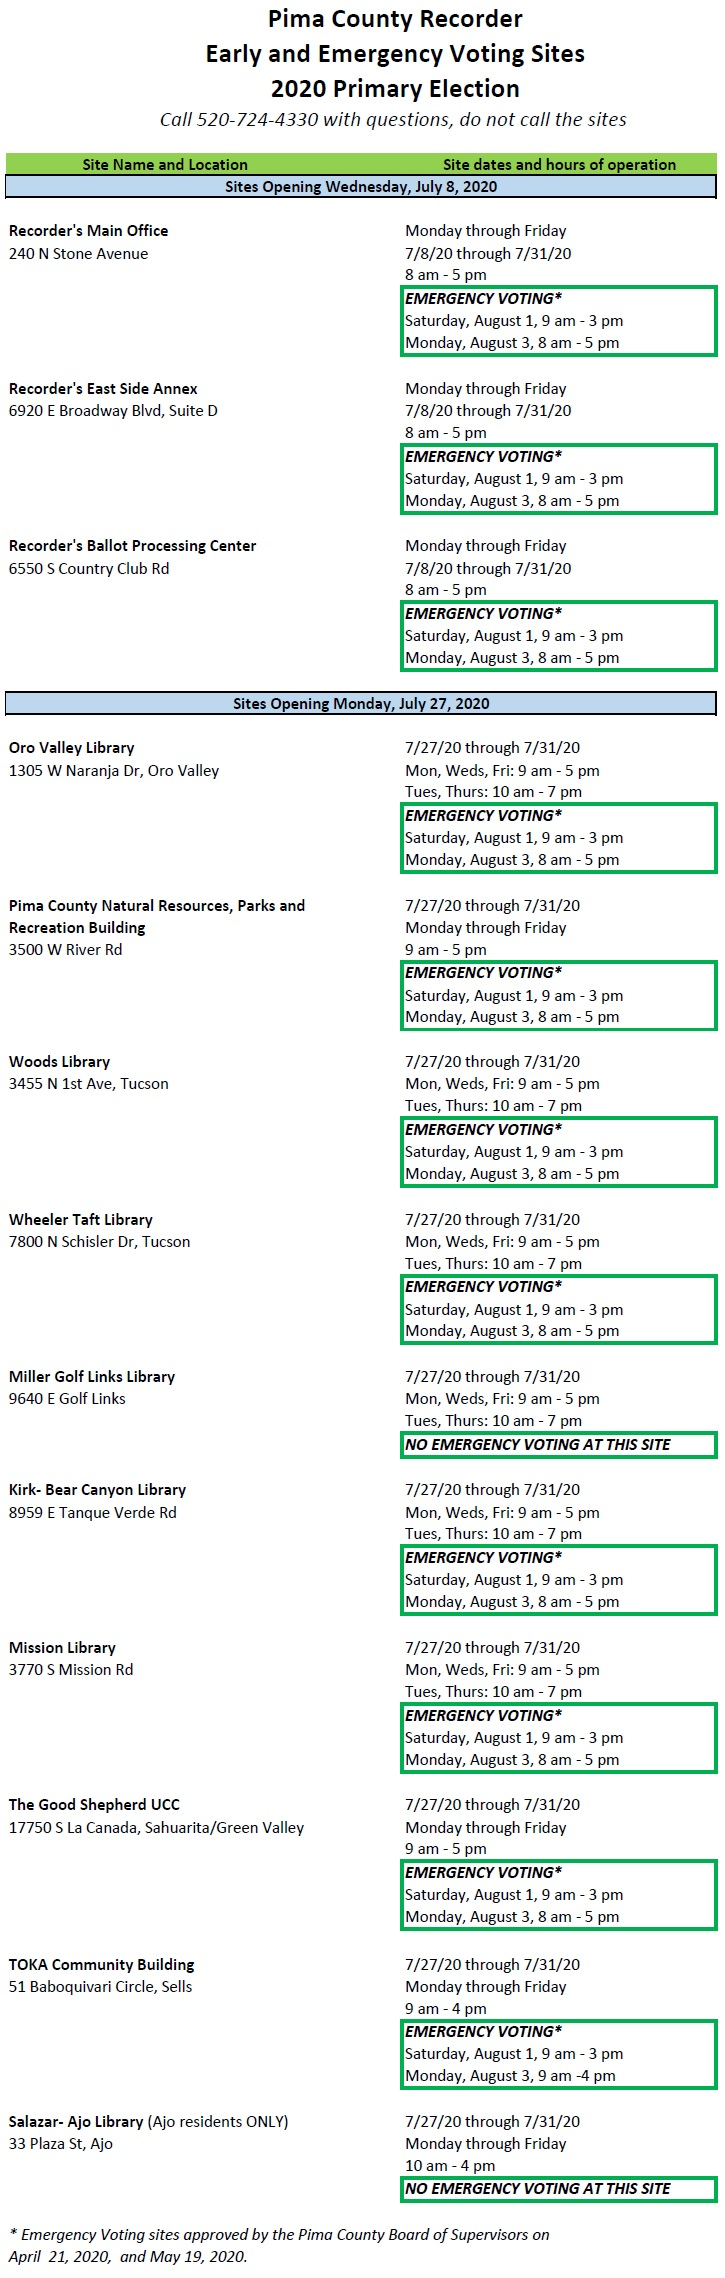 Early Voting Sites 2020 Primary Election